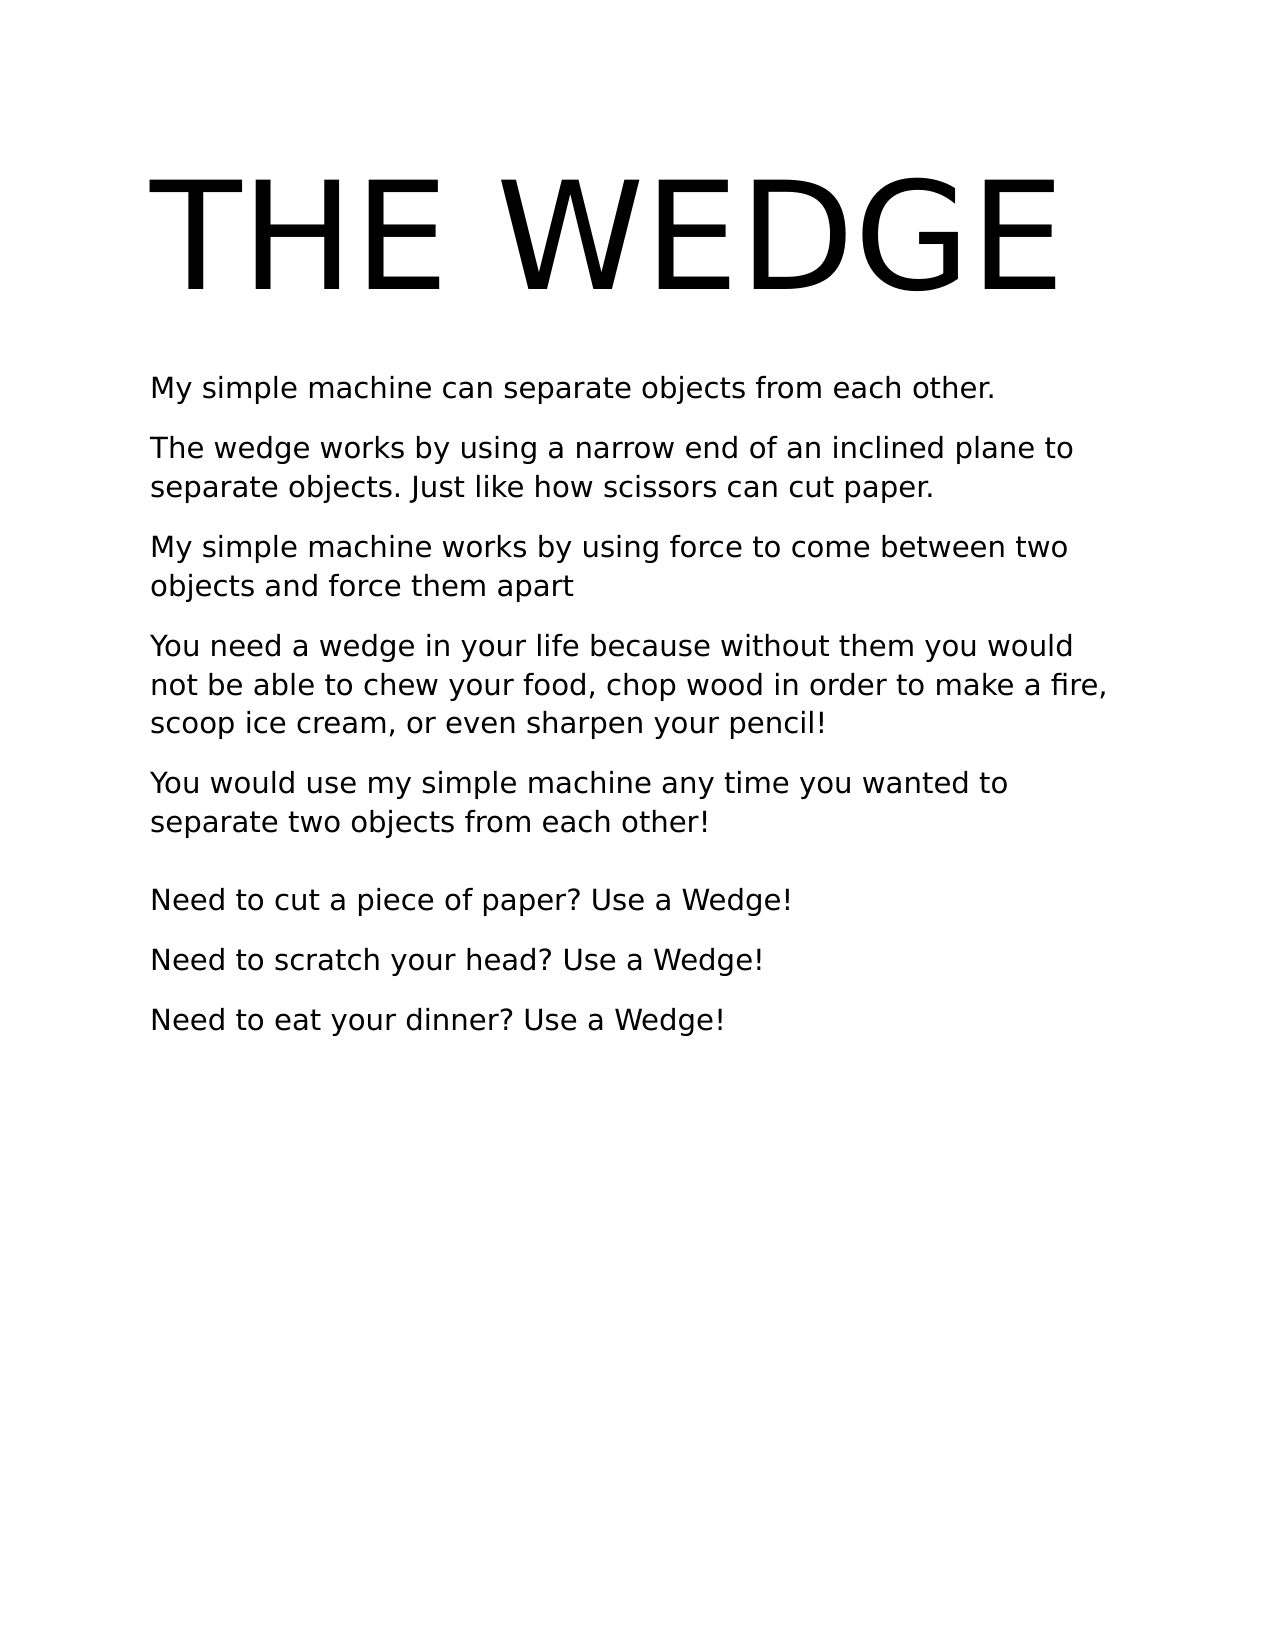 Wedges Information Poster Resource Preview